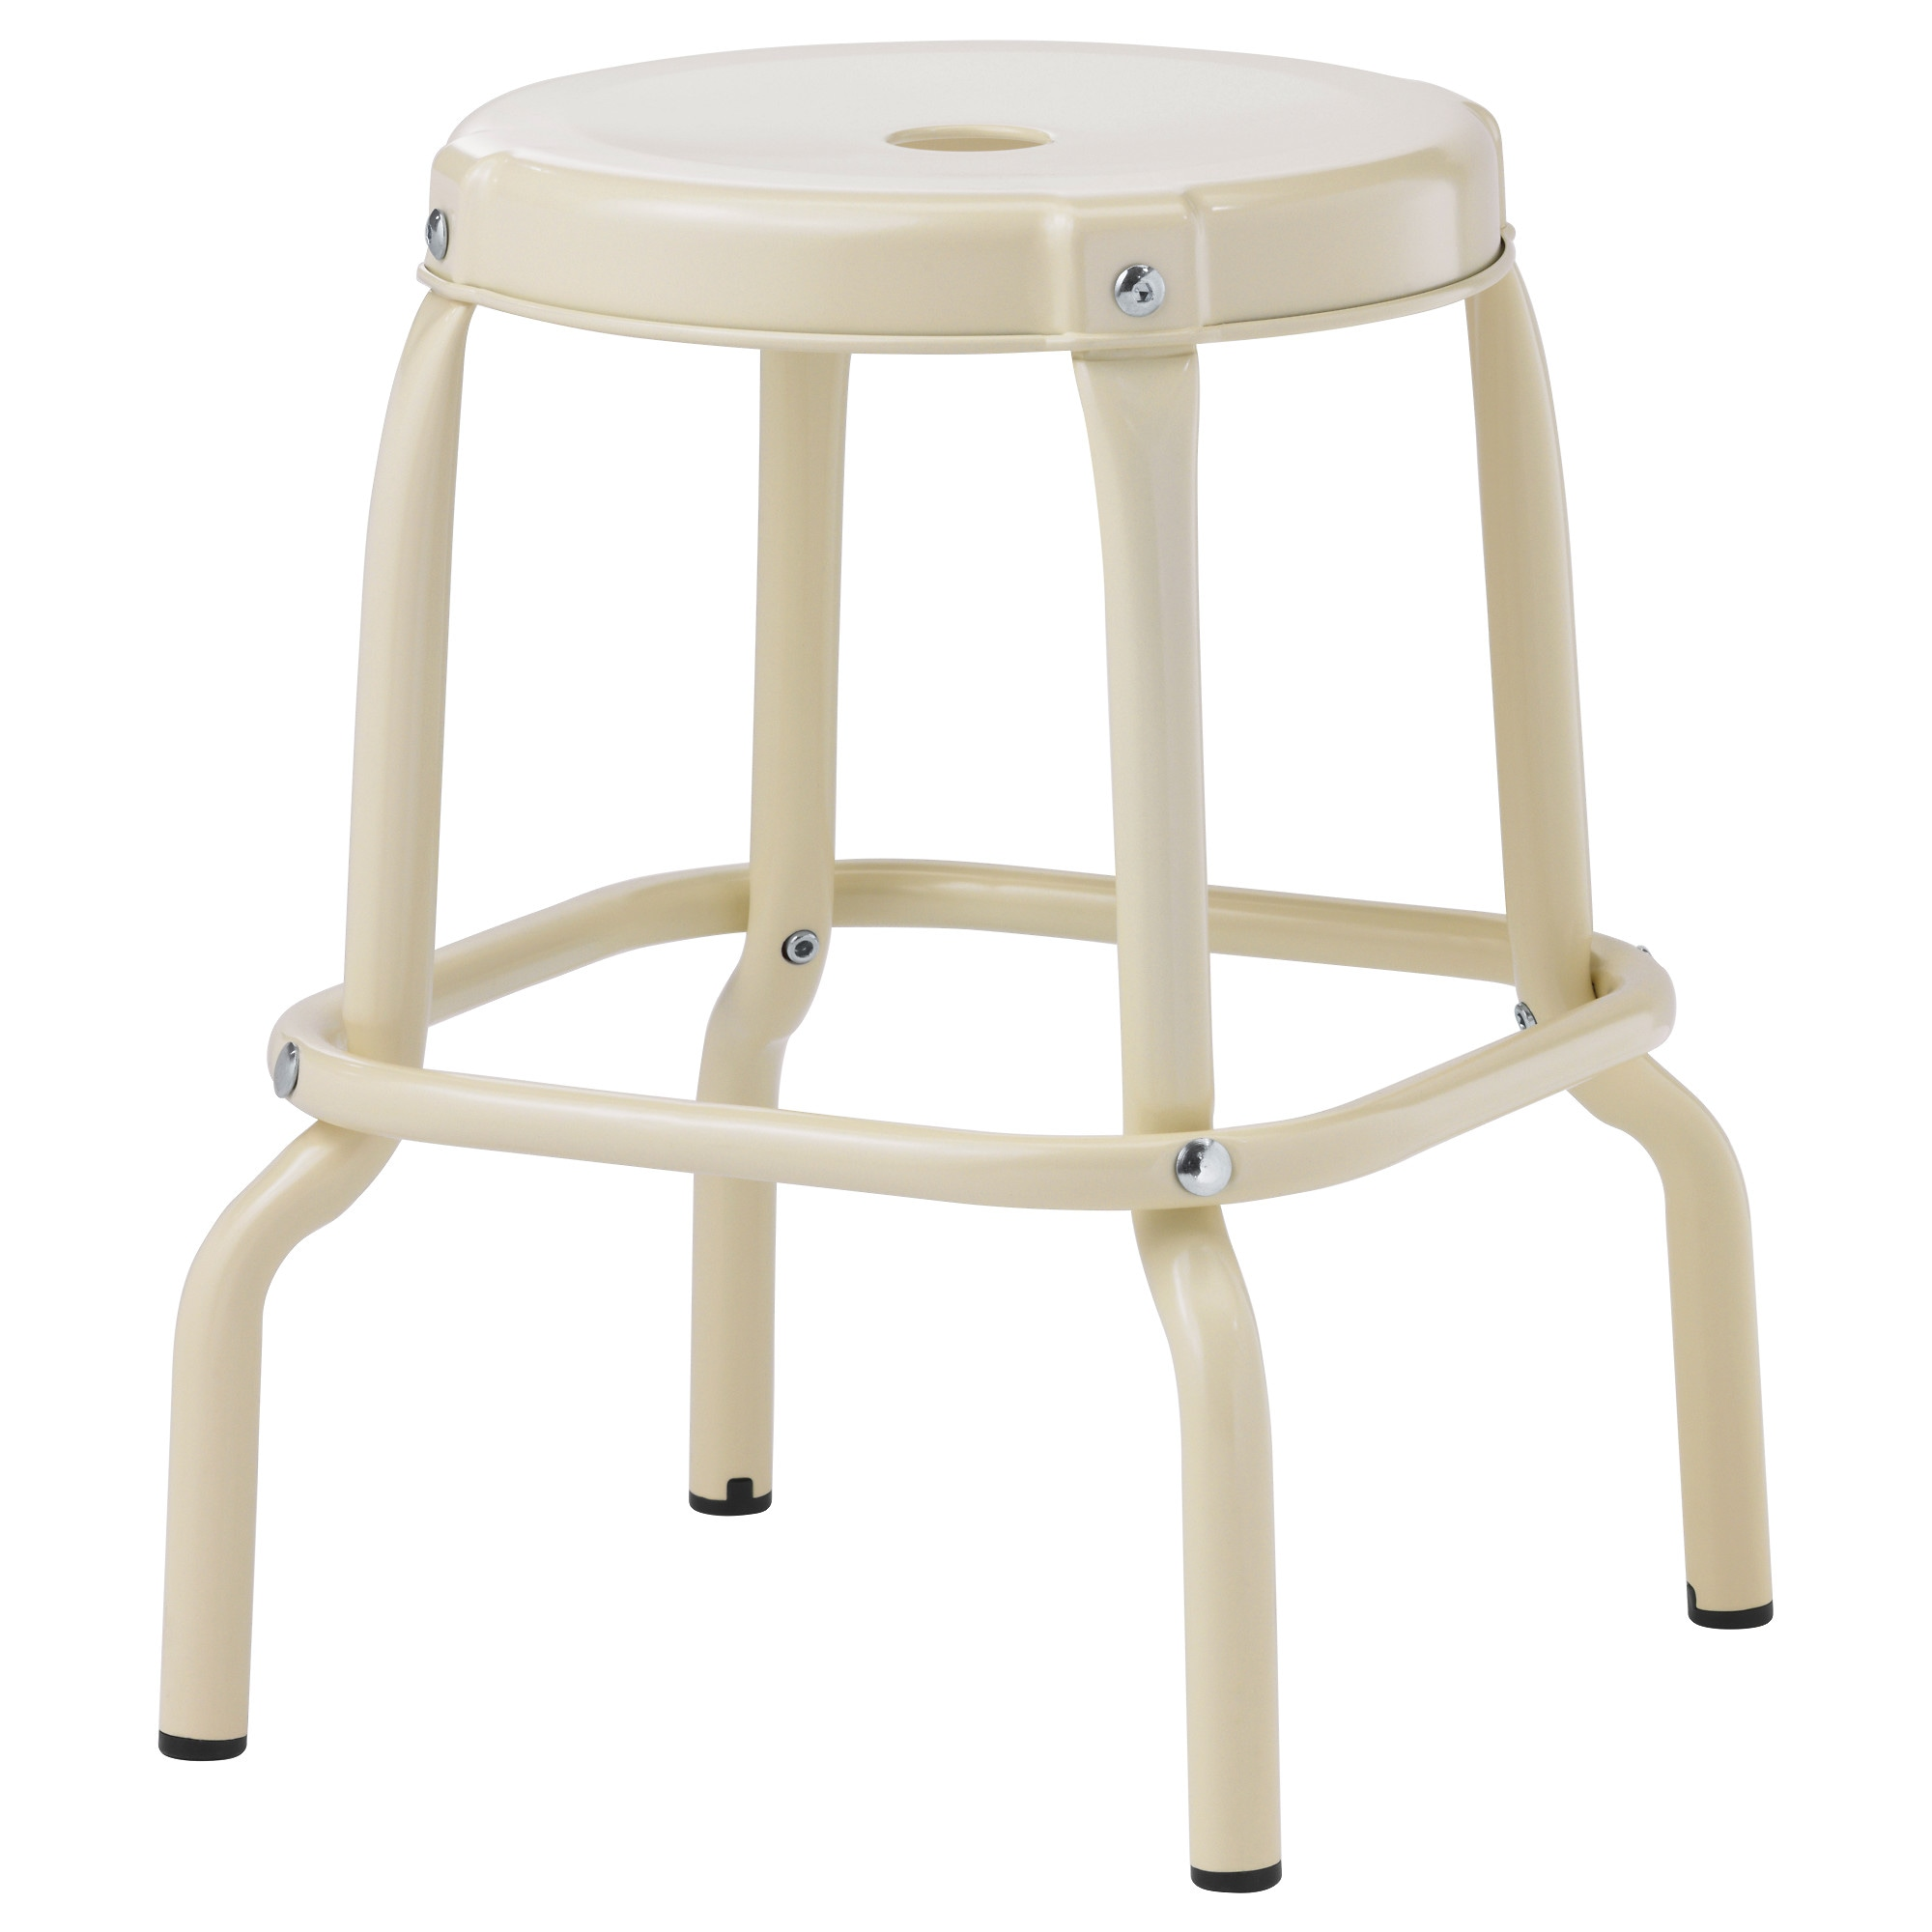 RÅSKOG Stool, Beige Tested For: 220 Lb Seat Diameter: 11 3/4